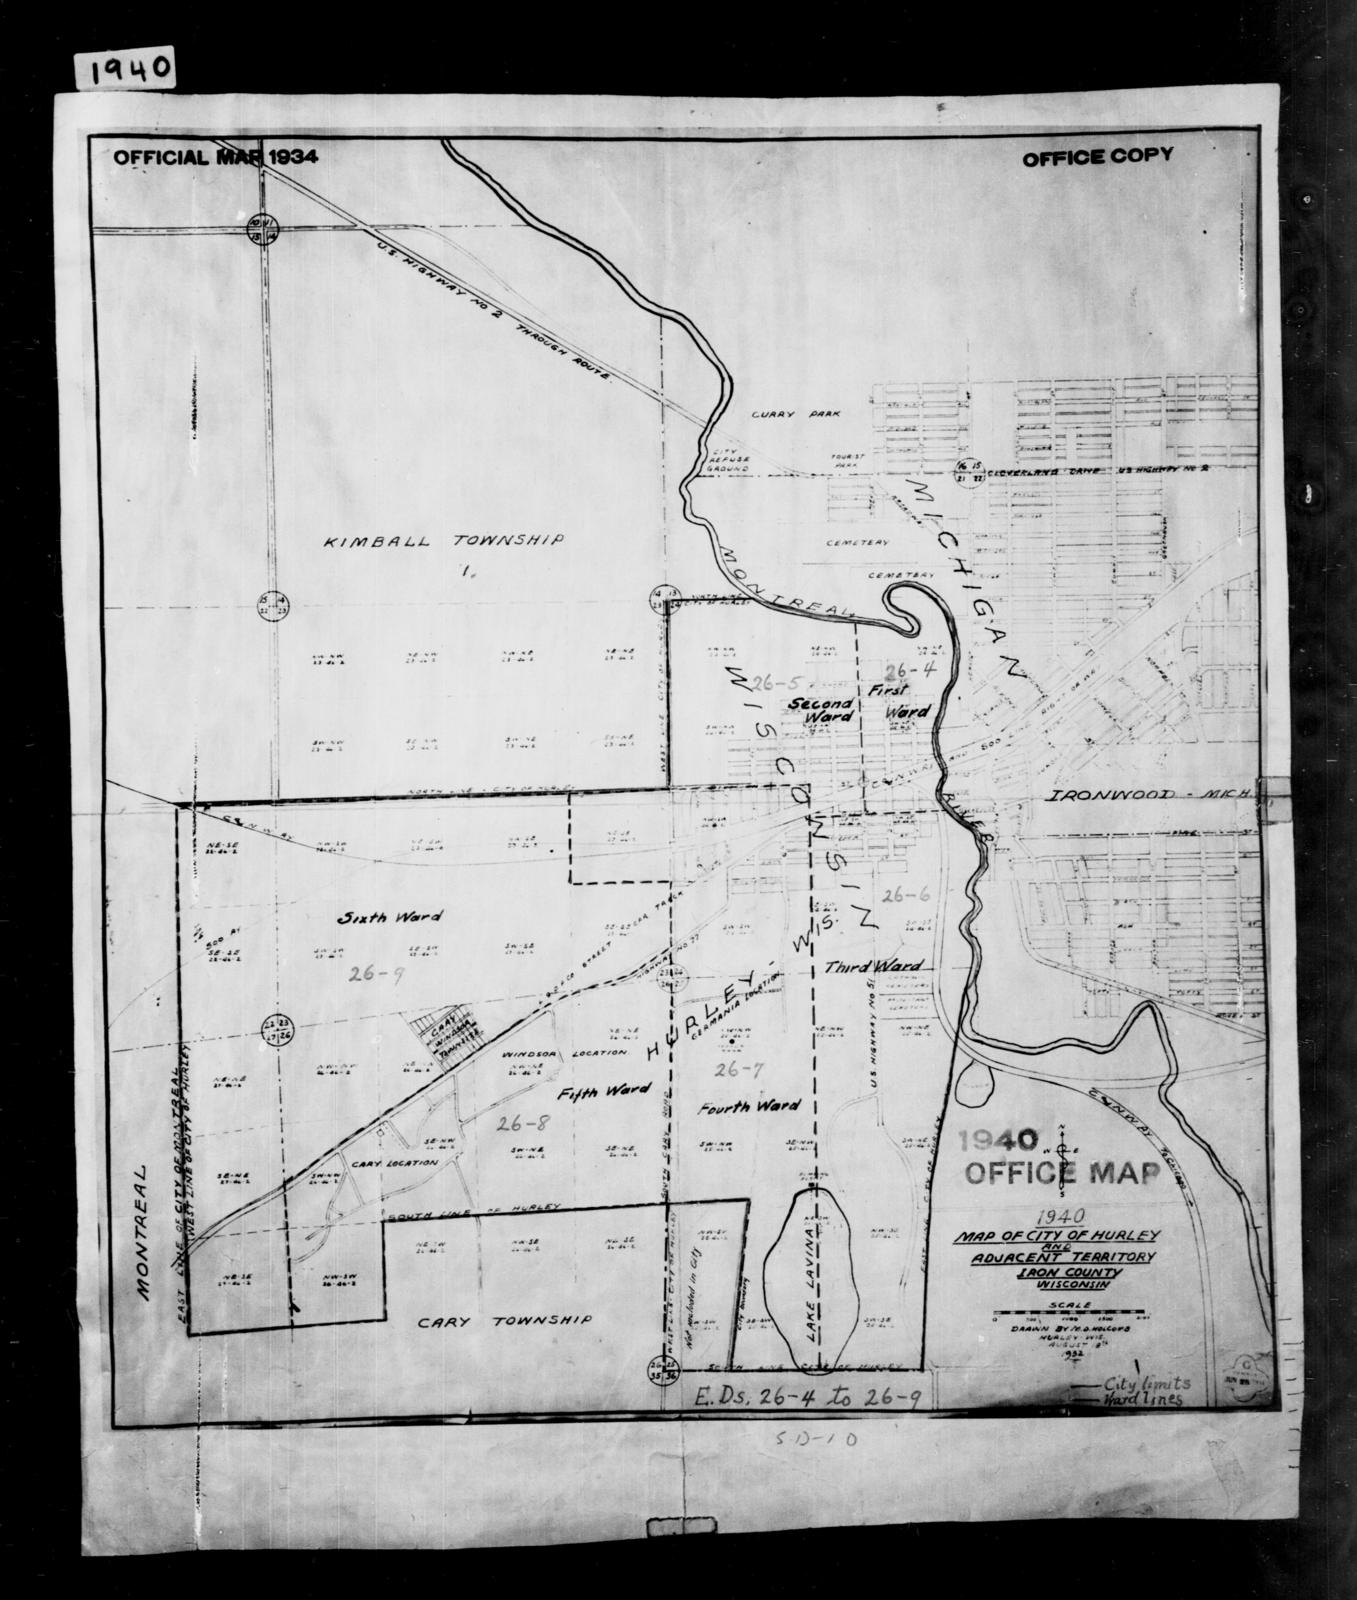 1940 Census Enumeration District Maps - Wisconsin - Iron County